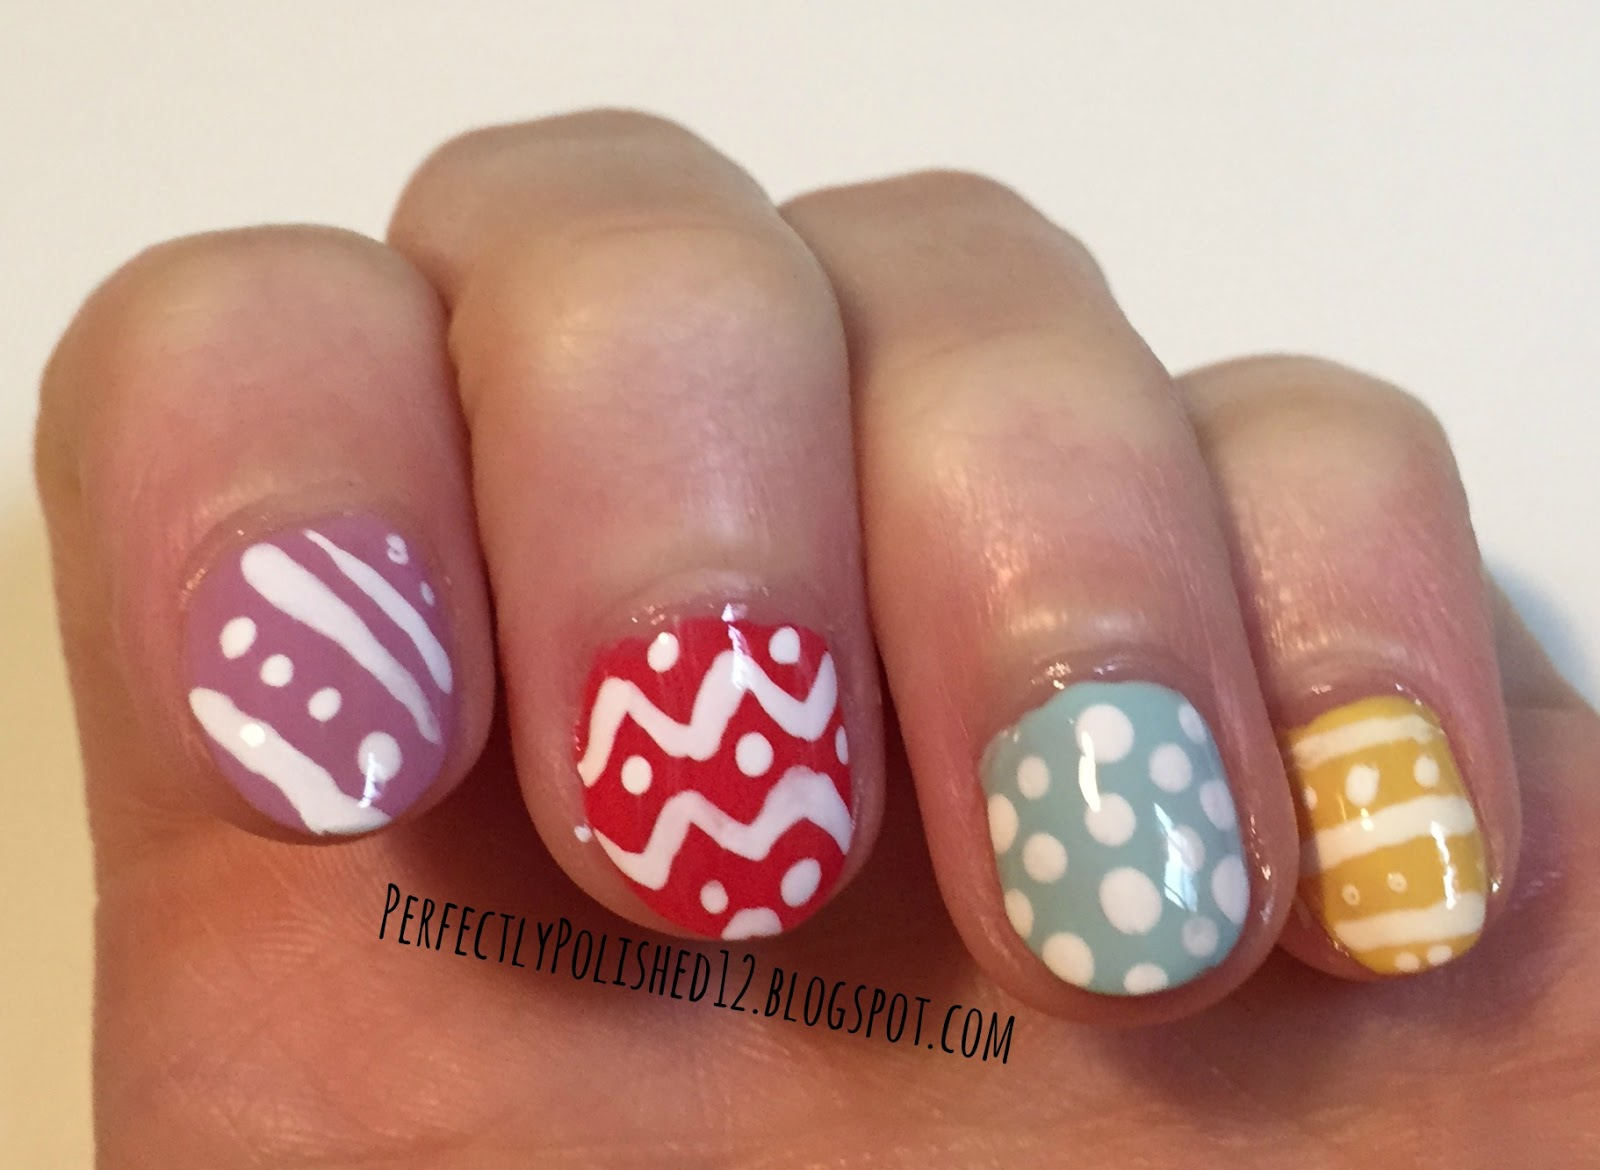 Perfectly Polished 12 Easter Egg Nails